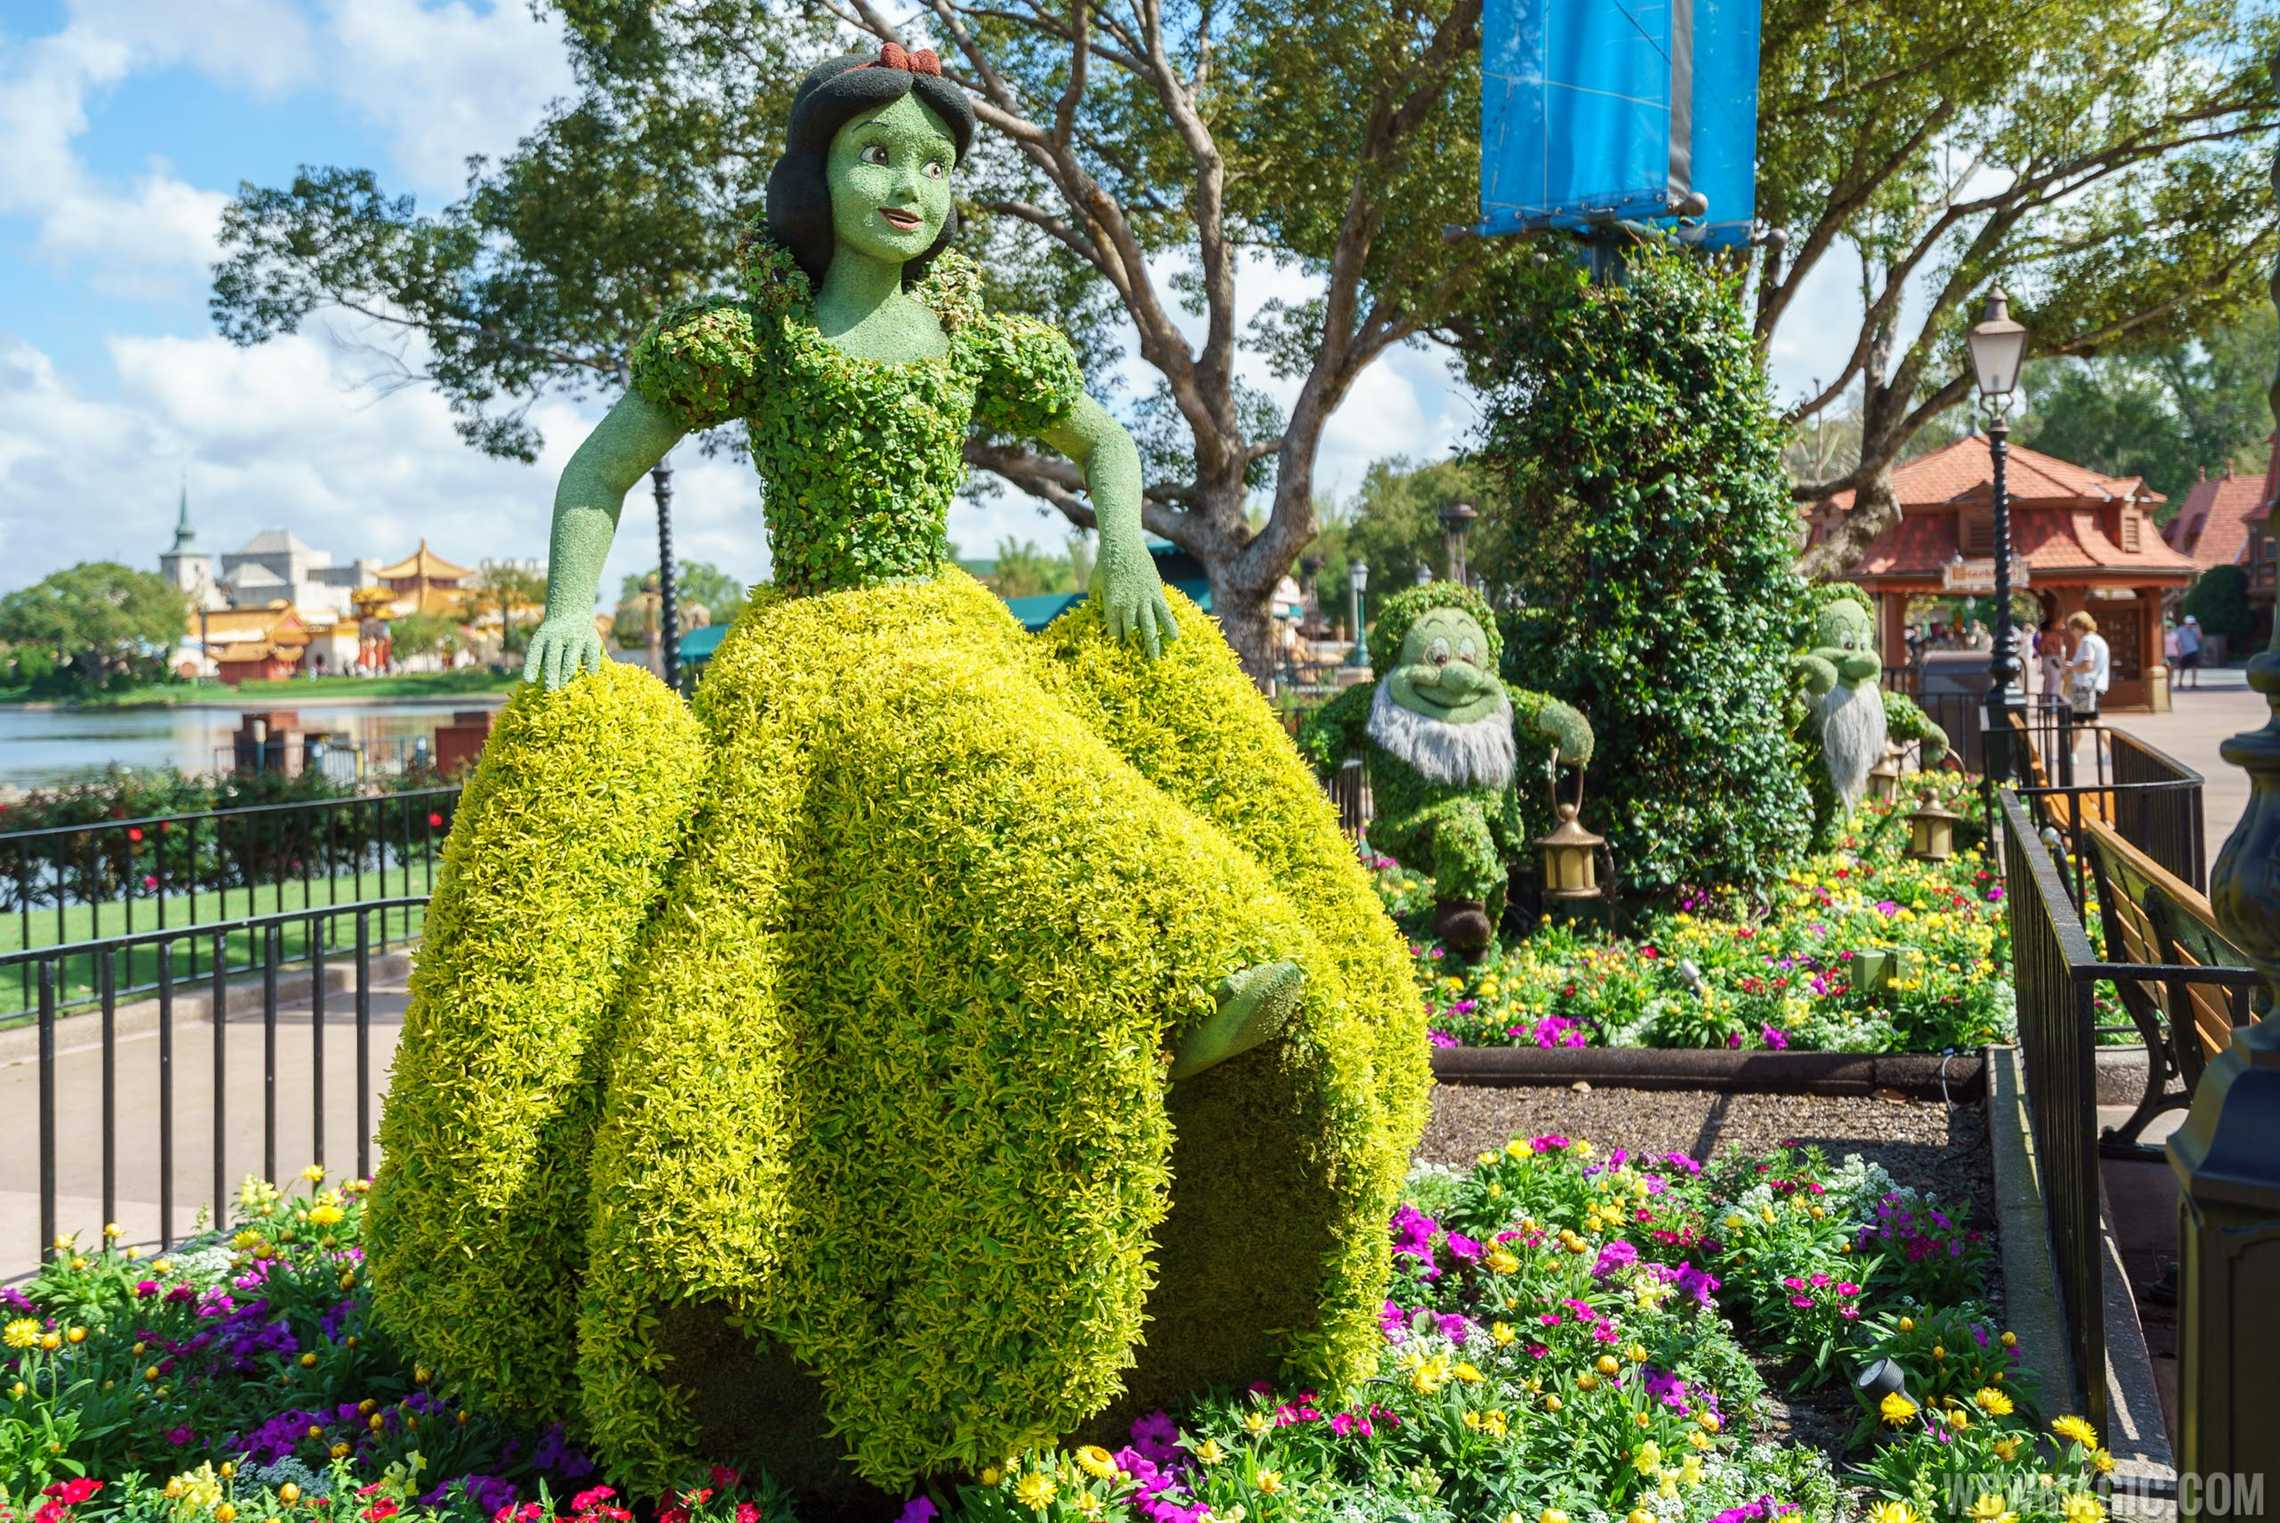 2017 Flower and Garden Festival - Snow White and the Seven Dwarfs topiaries at the Germany Pavilion